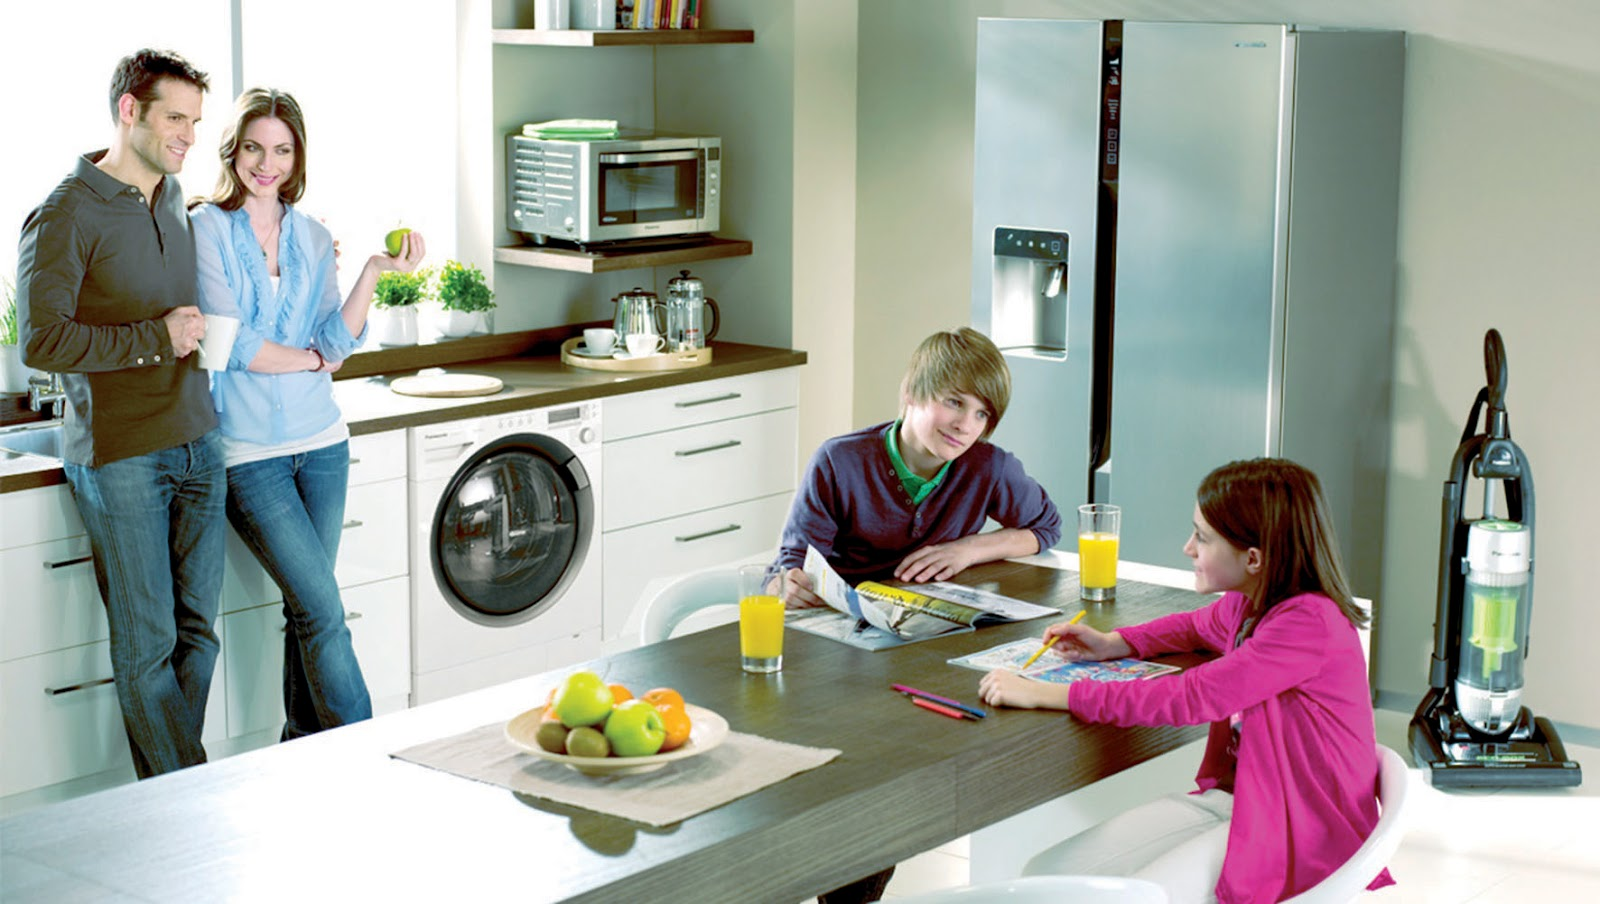 Guest Post Finding Right Kitchen Appliances Suit Your Family